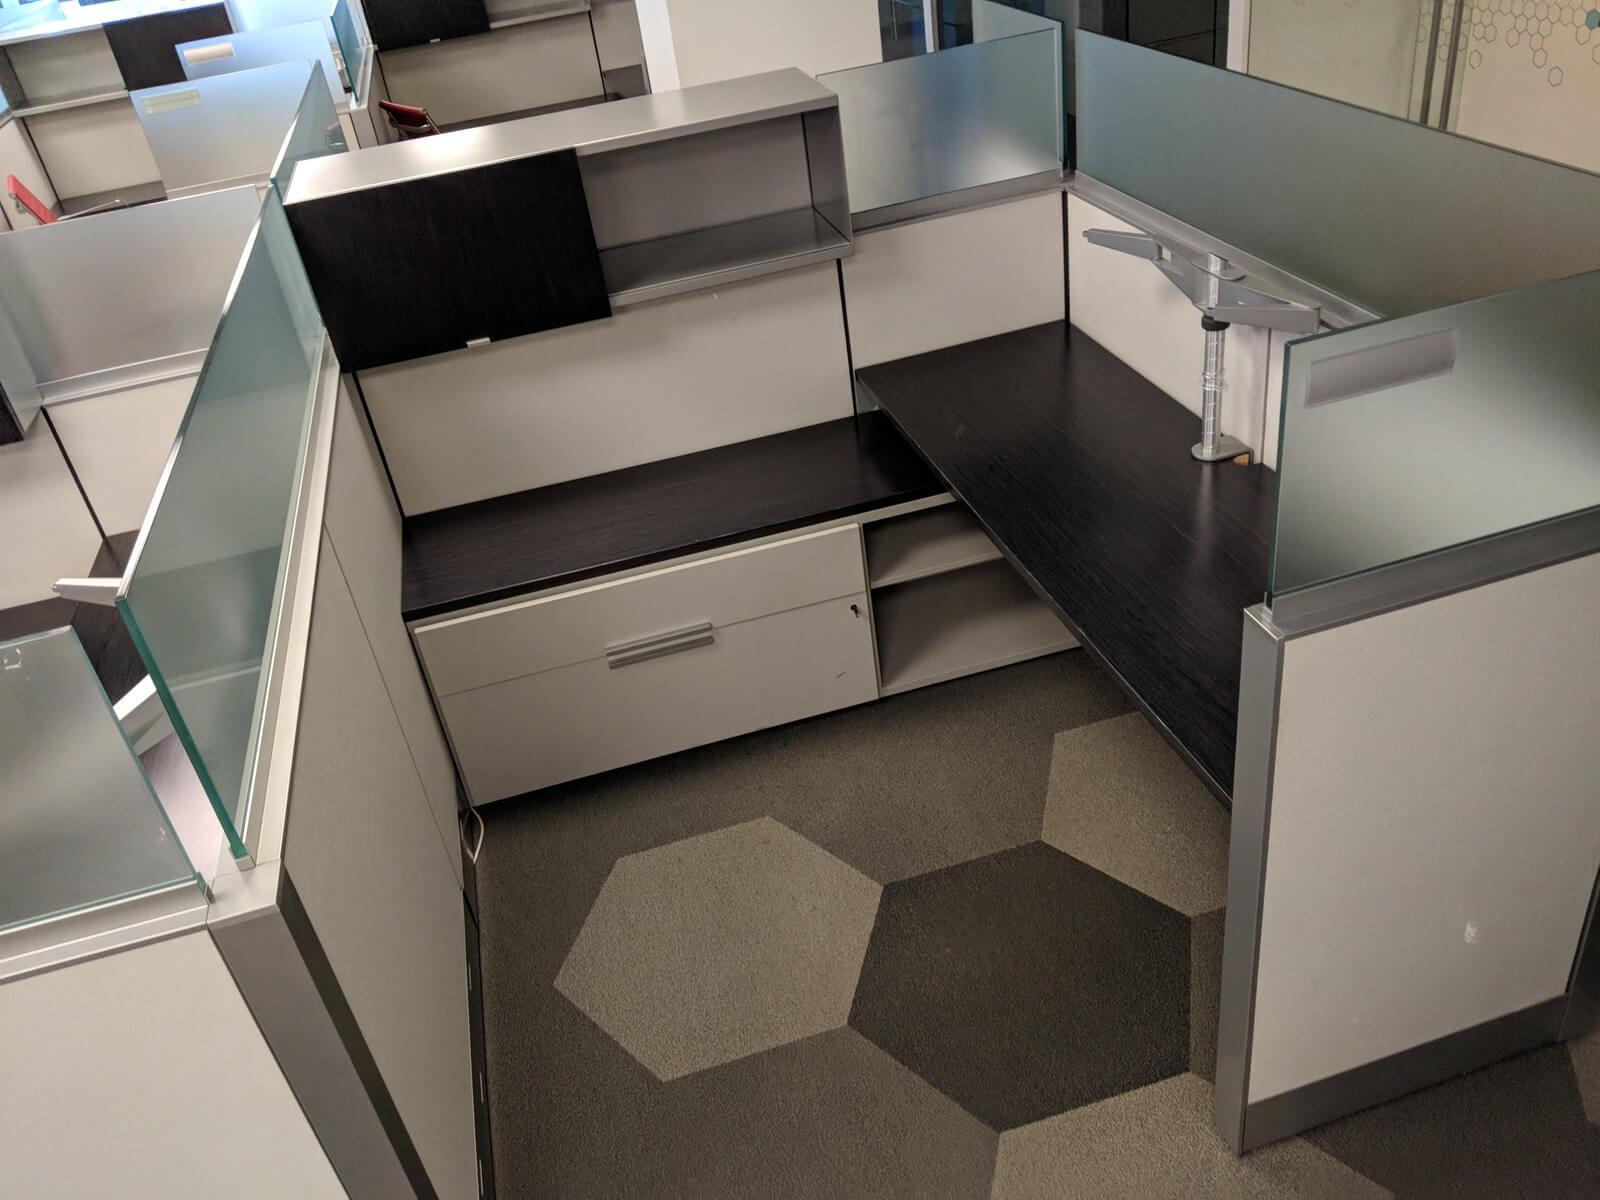 Knoll Autostrada - Extra Storage Space